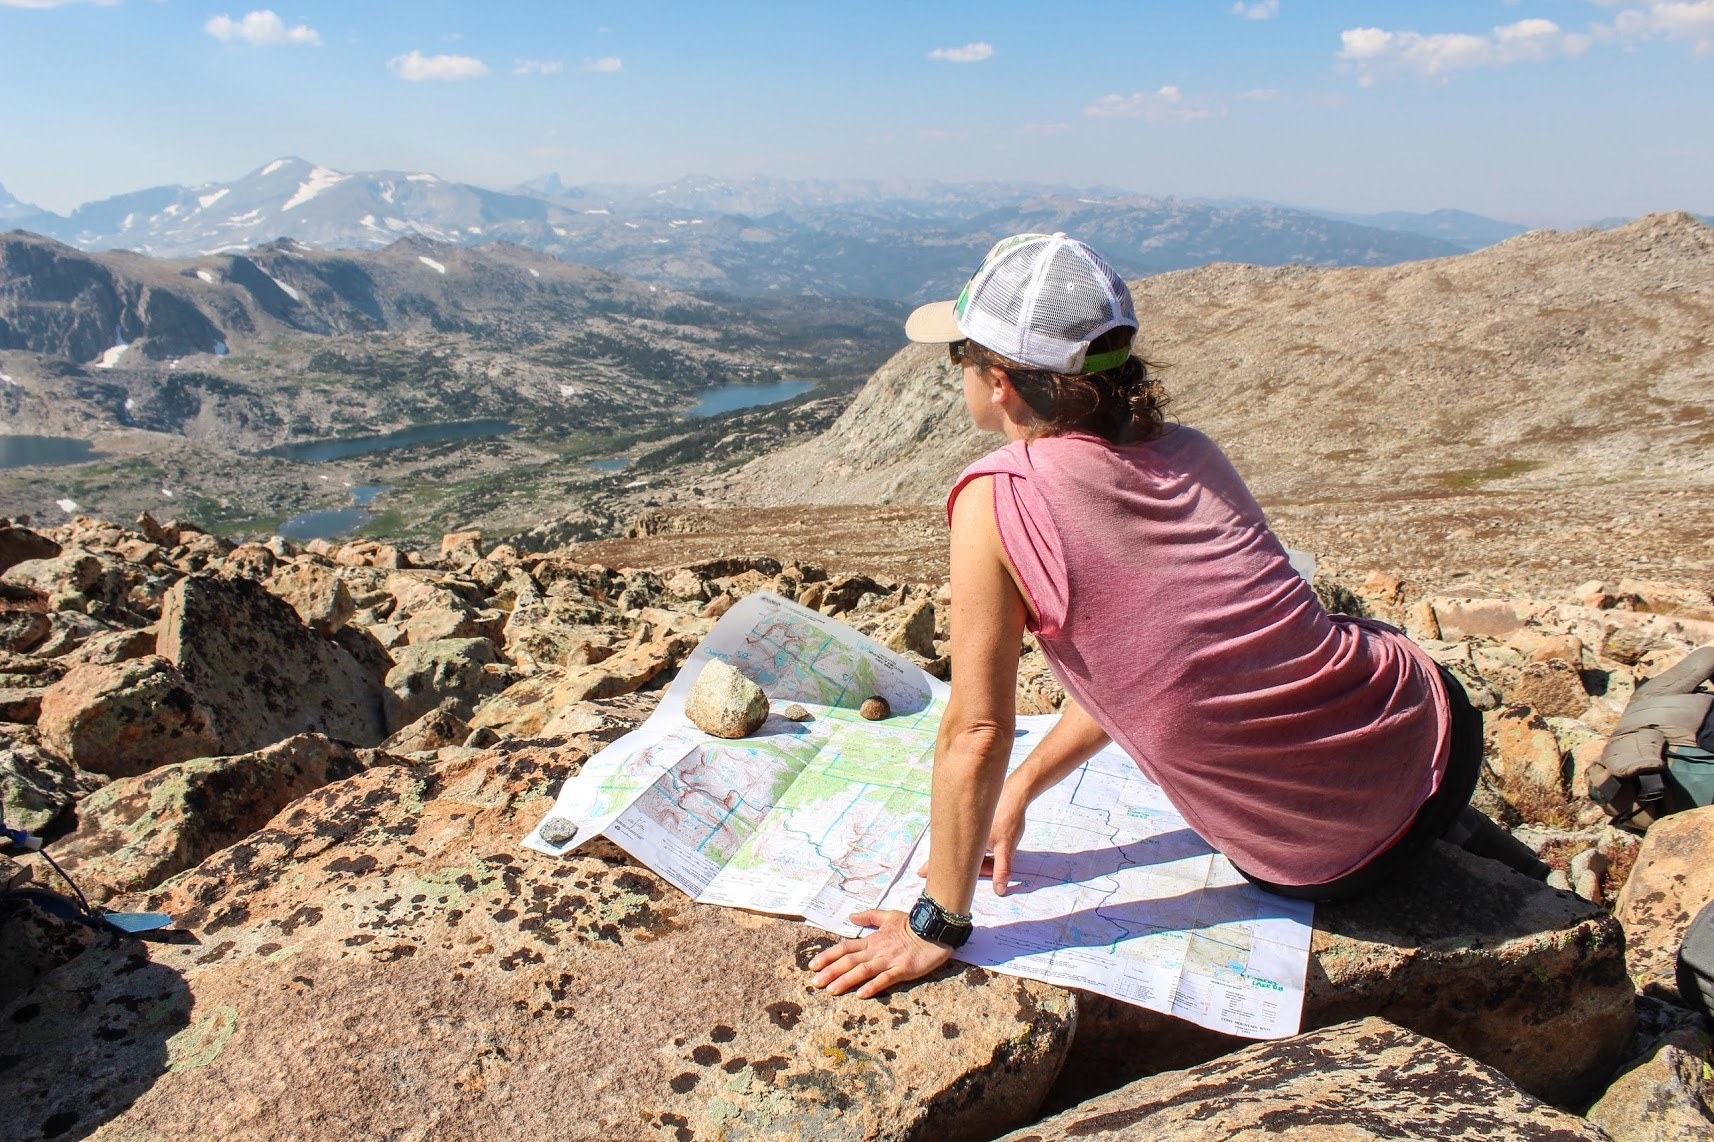 woman wearing baseball cap sits next to a map weighed down with rocks in the mountains